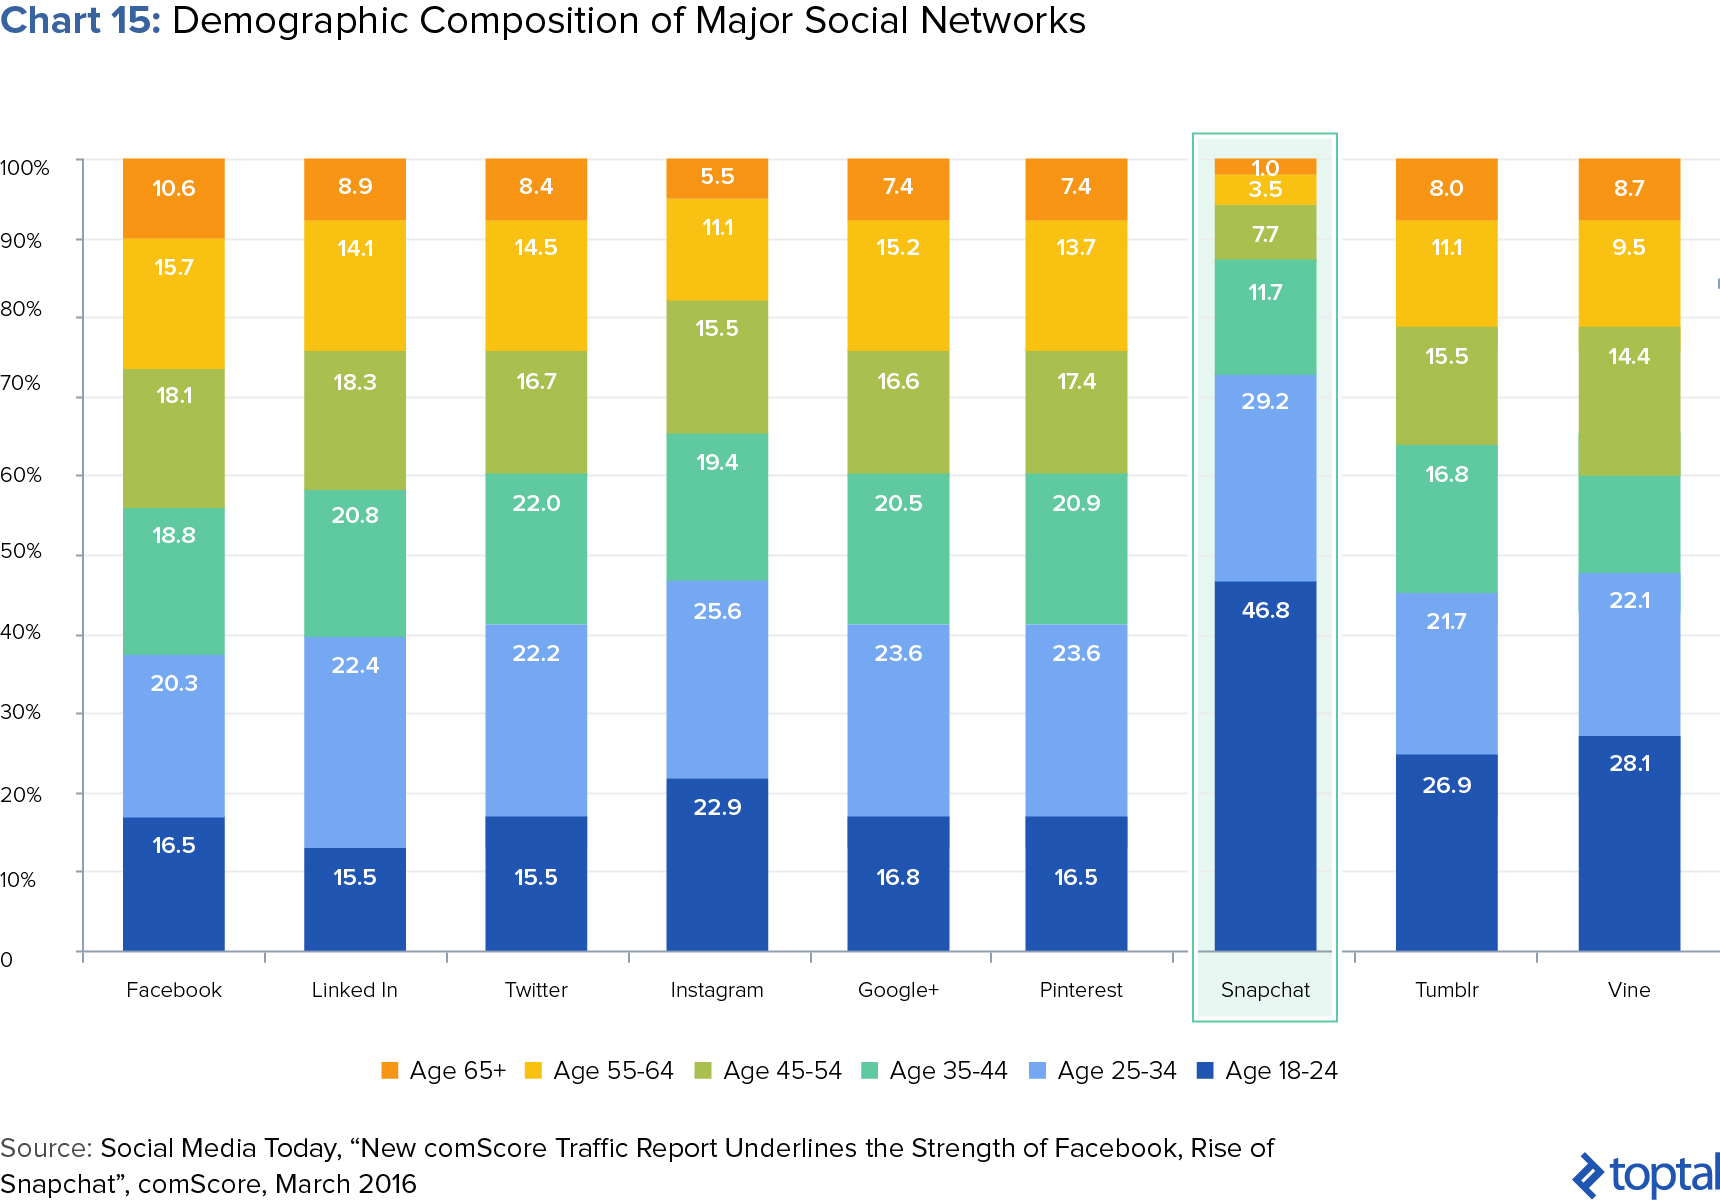 Snap its all about the arpu dummy toptal more importantly snap has become a leading platform in terms of its engagement within 18 34 age demographic chart 16 facebook is clearly a dominant nvjuhfo Gallery